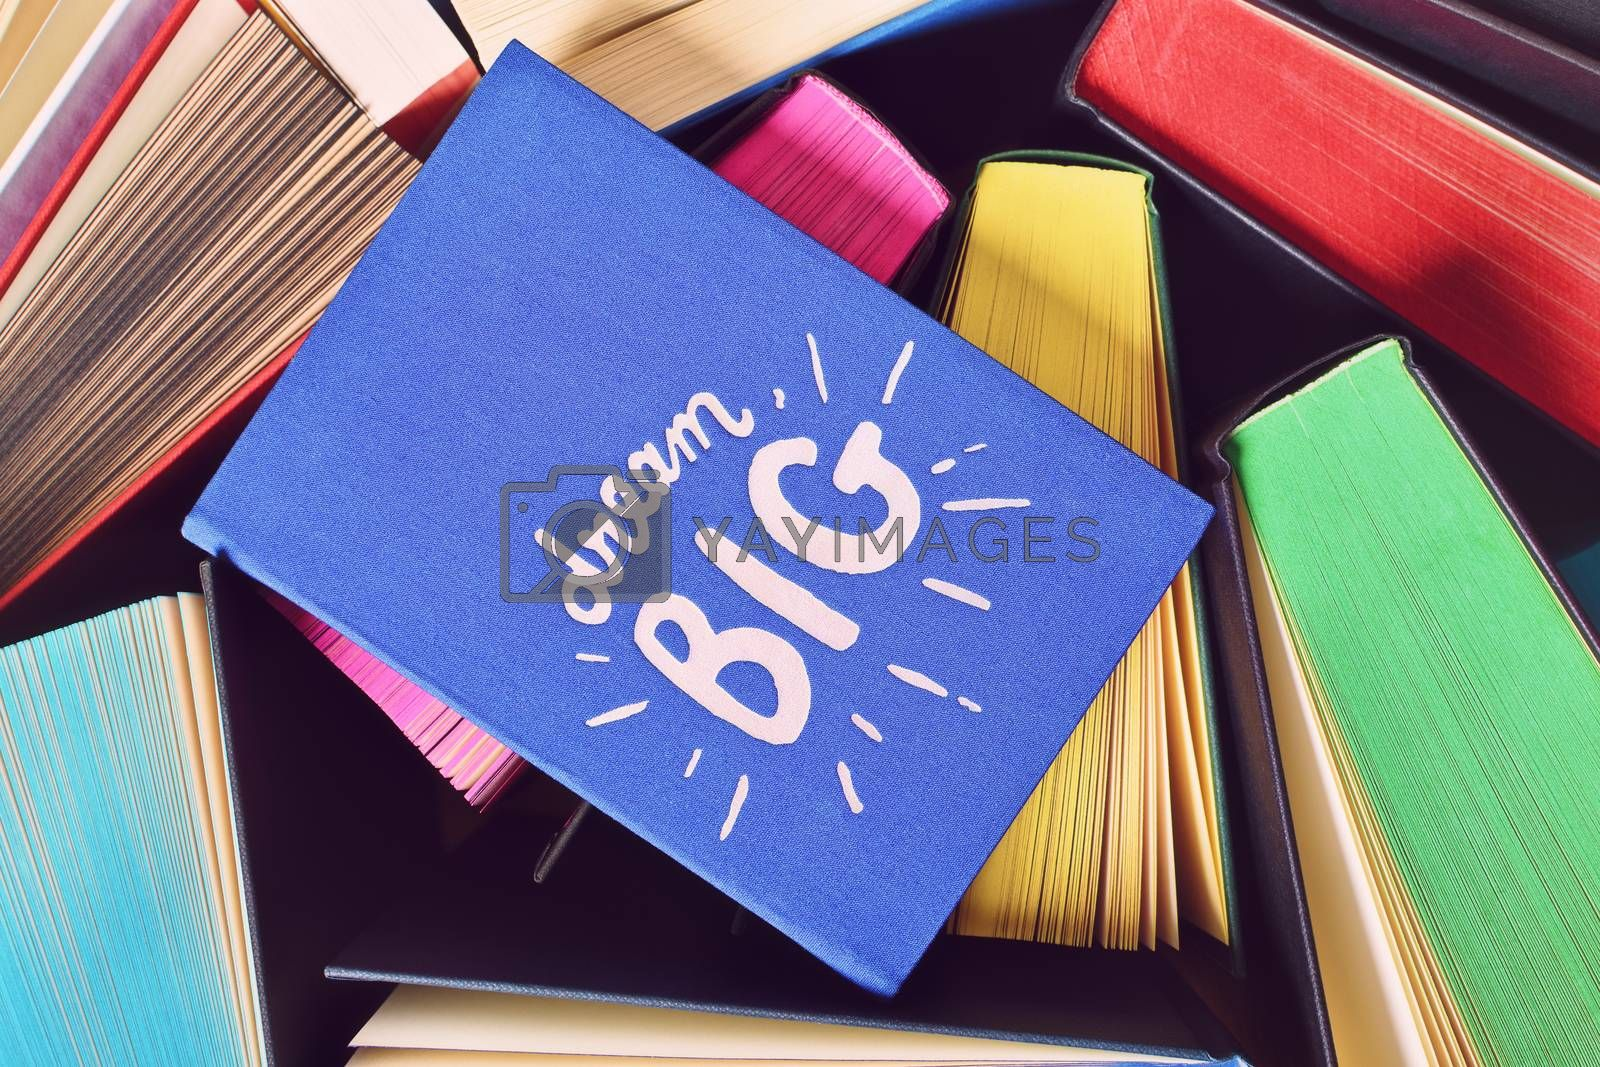 """Close up shot of a blue notebook with inspirational """"dream big"""" sign, on top of open books with multicolored sprayed edges."""